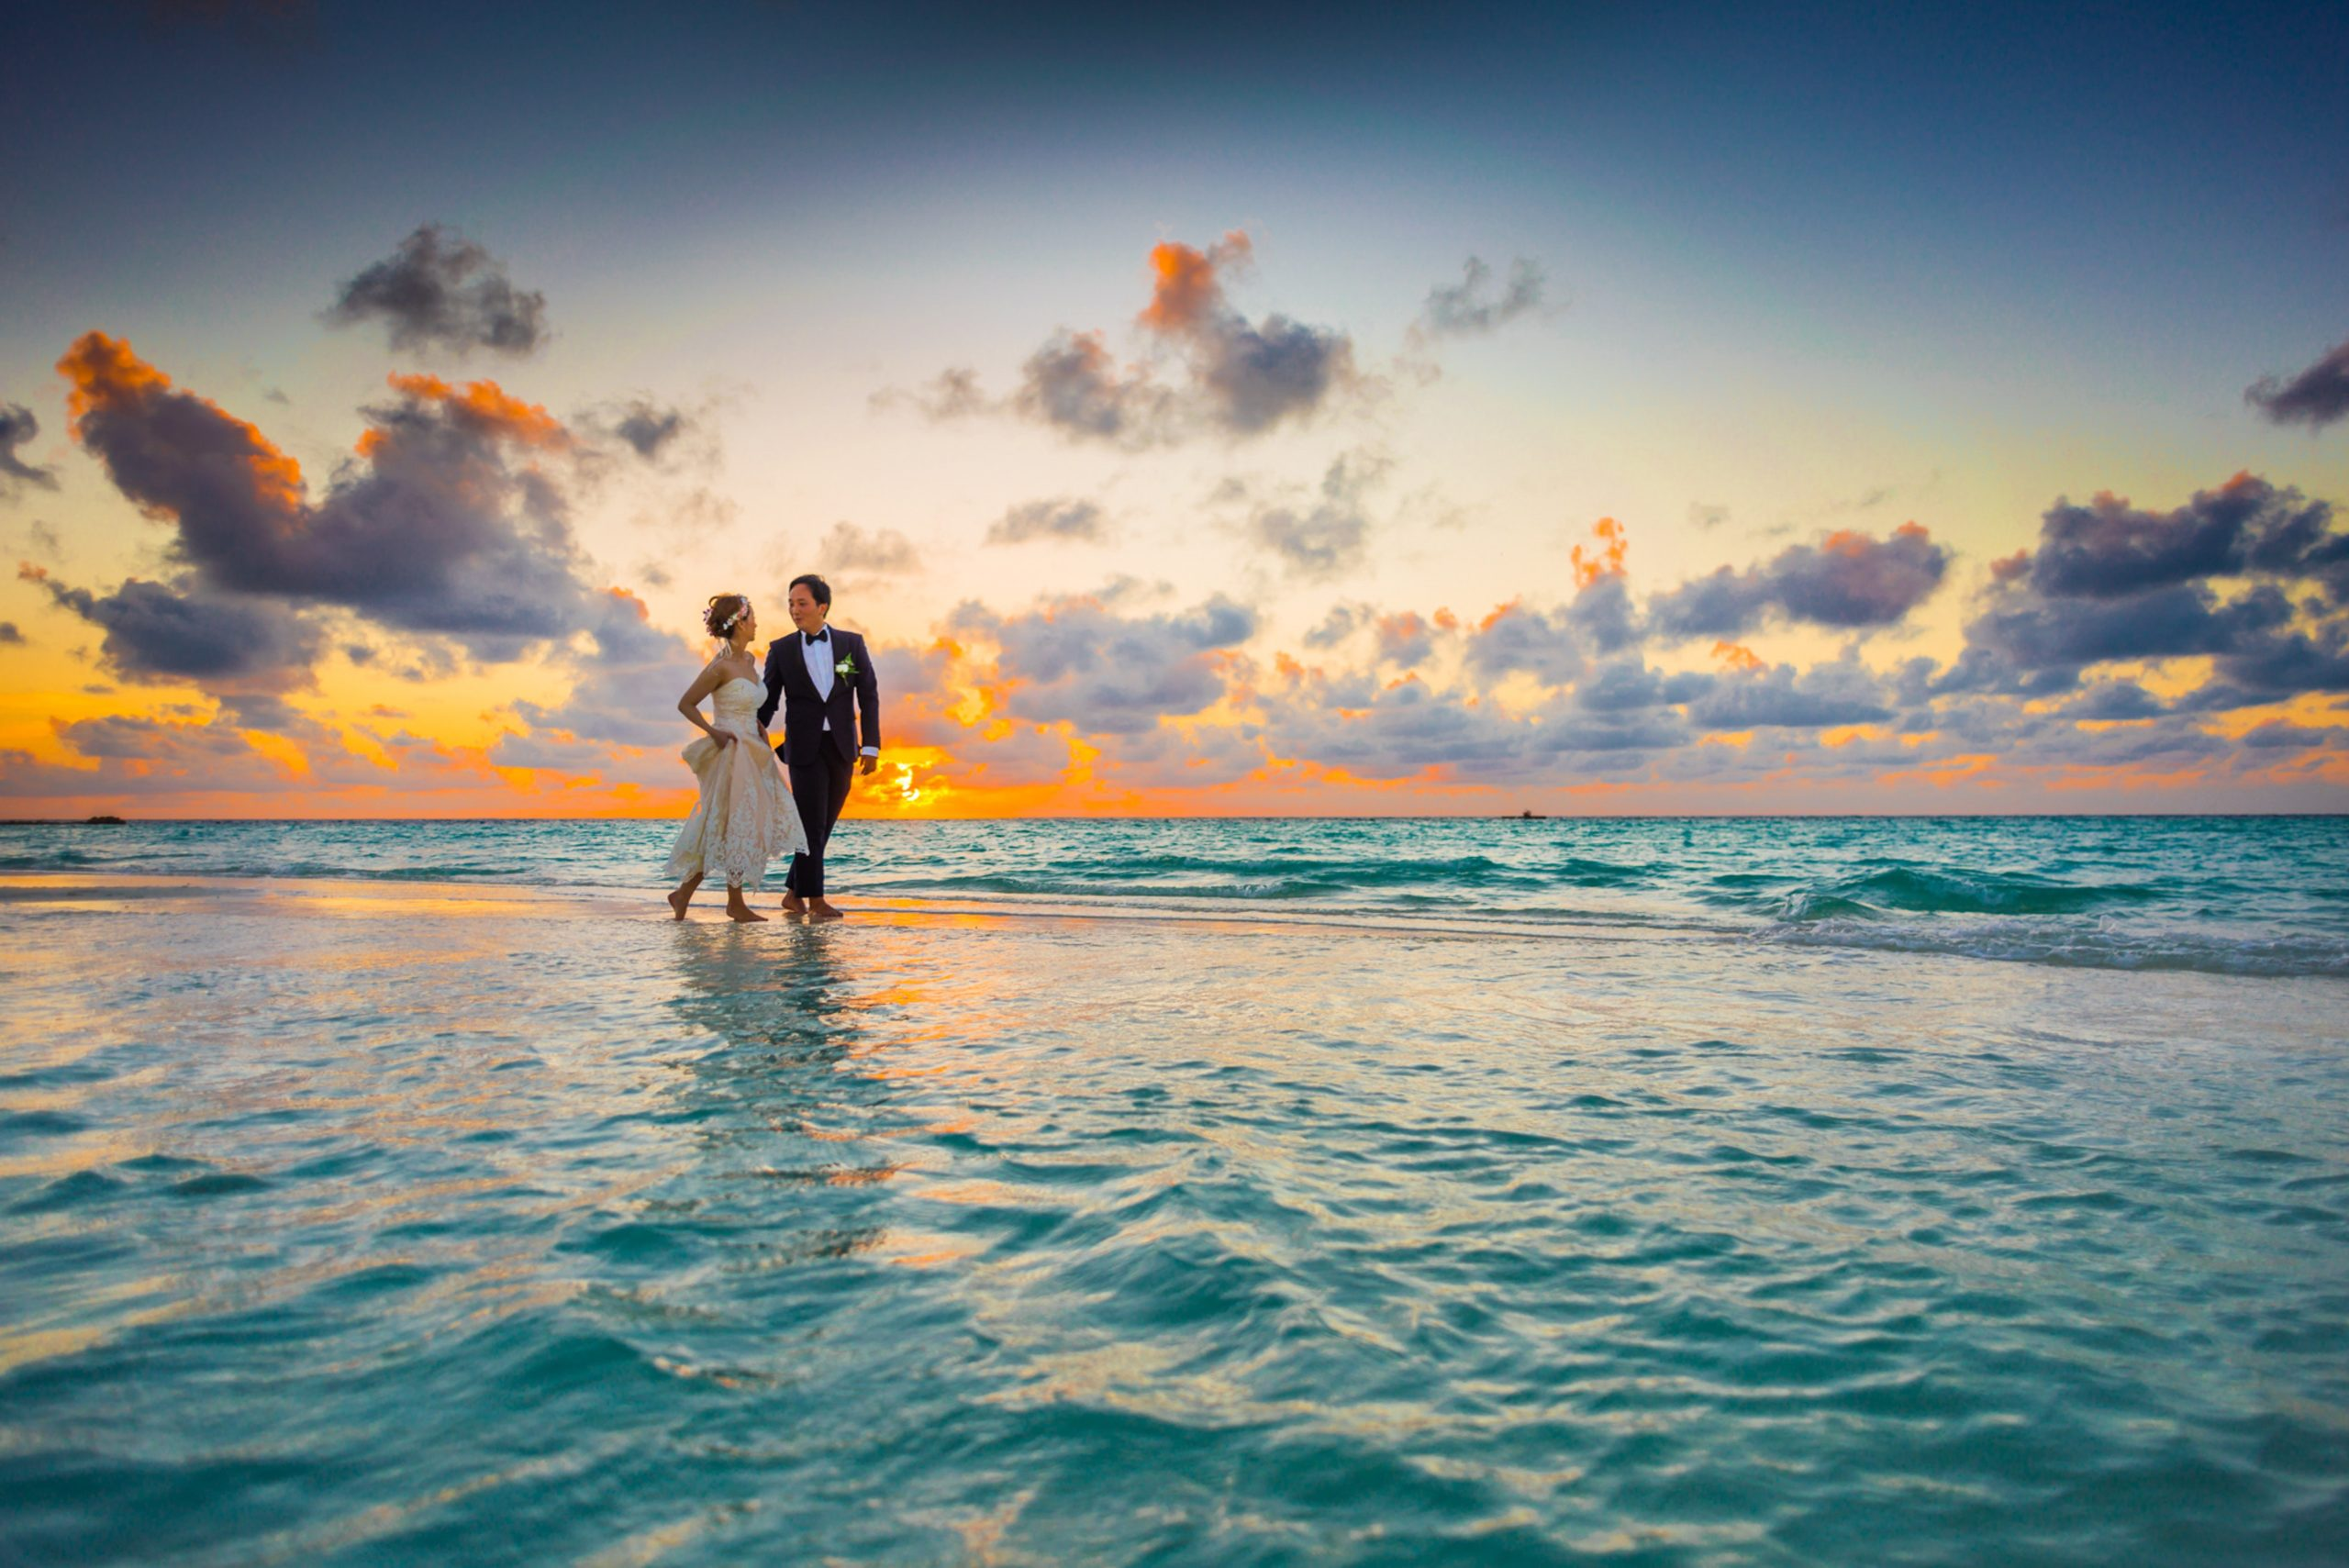 man-and-woman-walking-of-body-of-water-1024993